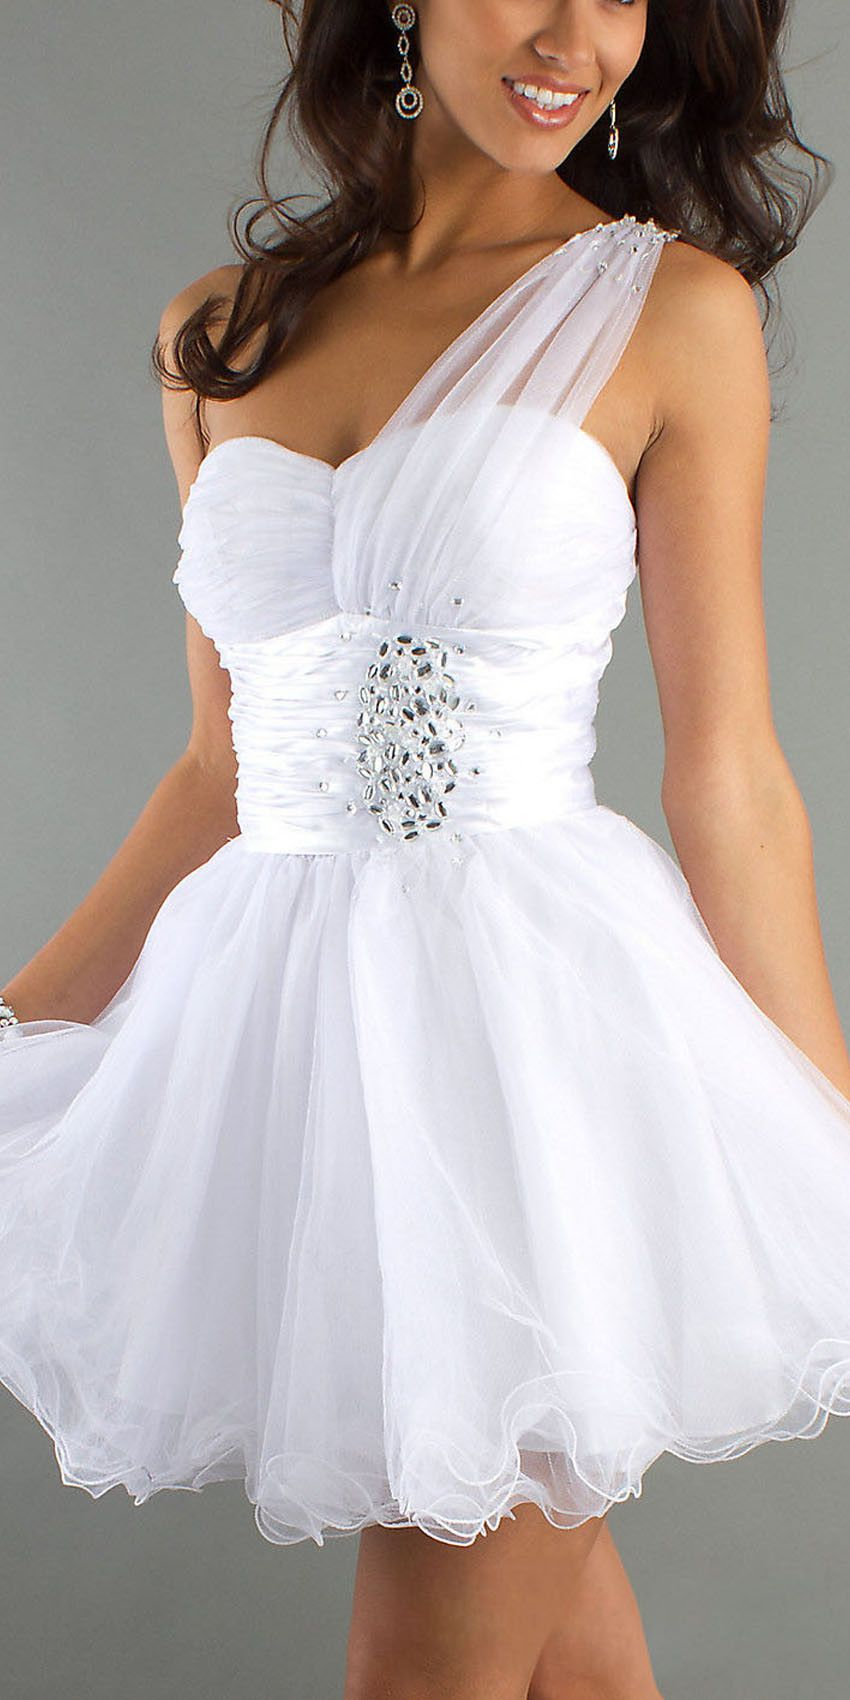 3c72cbdaeb7 CLEARANCE - One Shoulder White Homecoming Dress Tulle Skirt Sweetheart